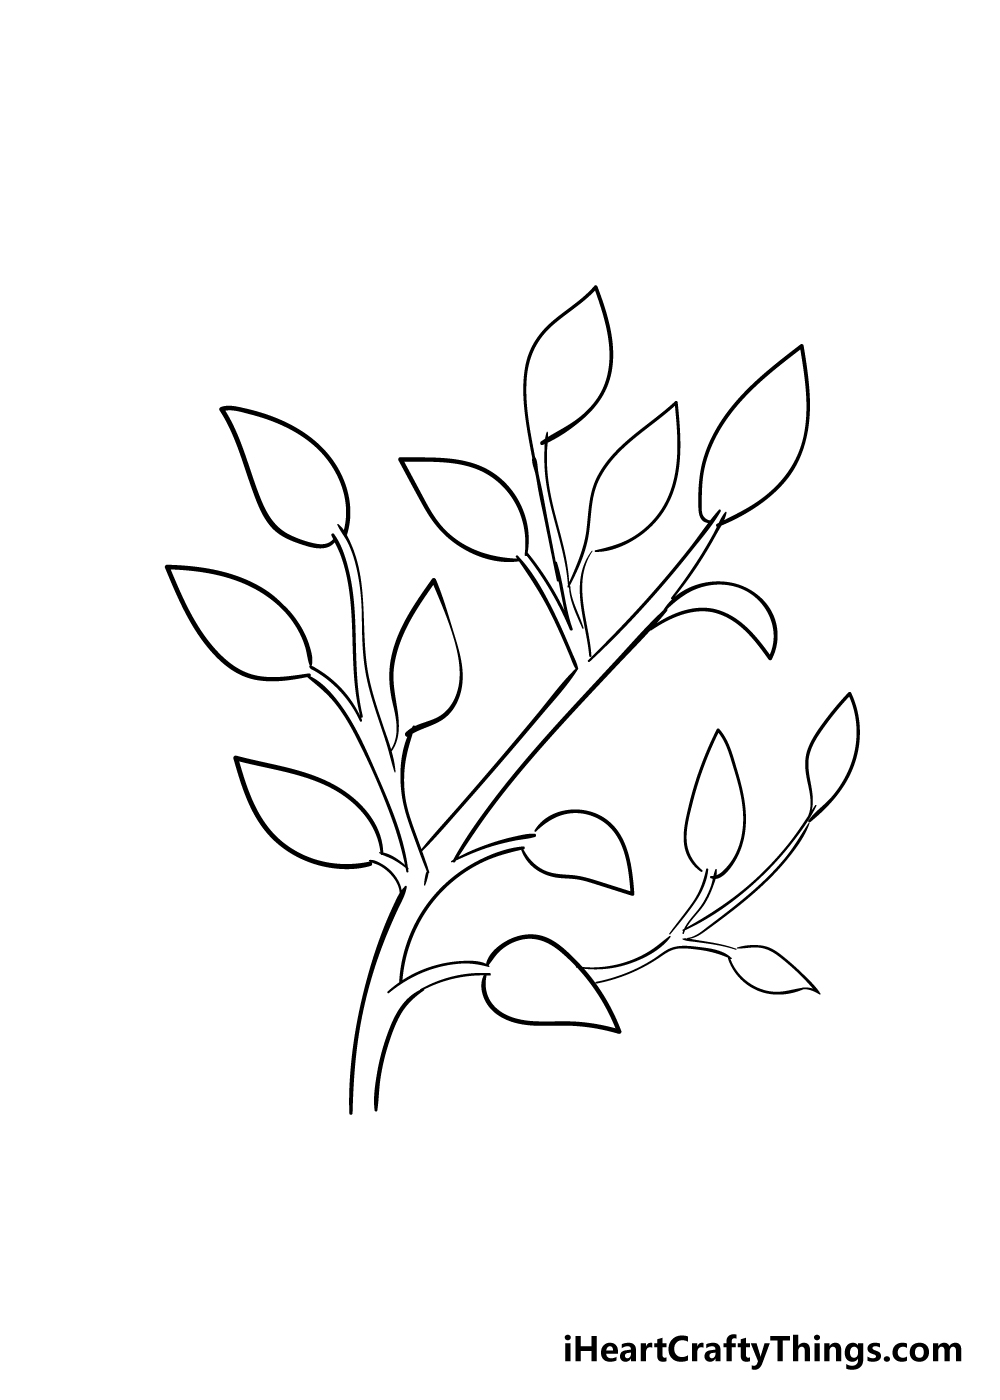 leaves on a tree drawing step 5